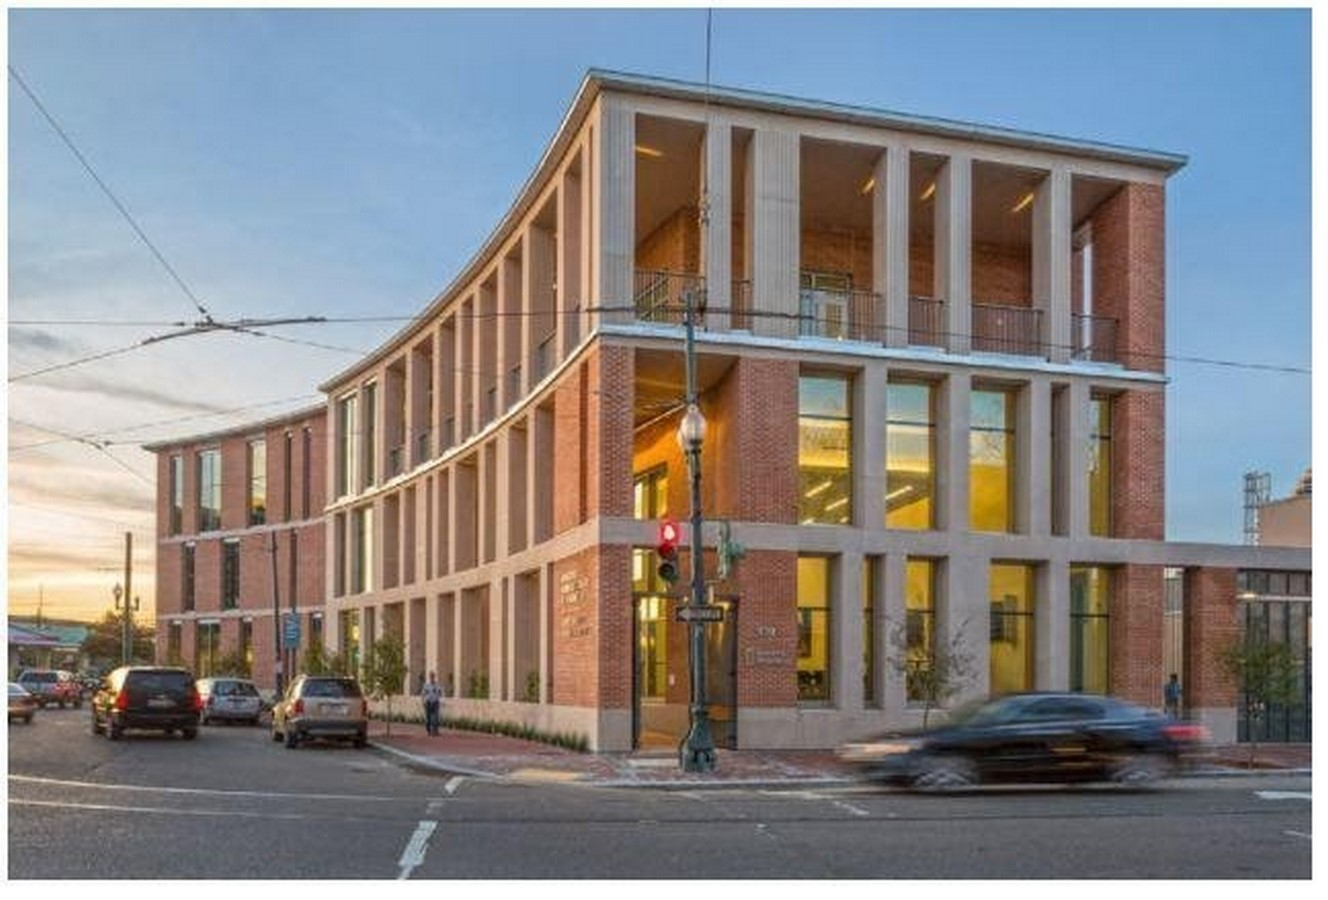 Architects in New Orleans - Top 70 Architects in New Orleans - Sheet67